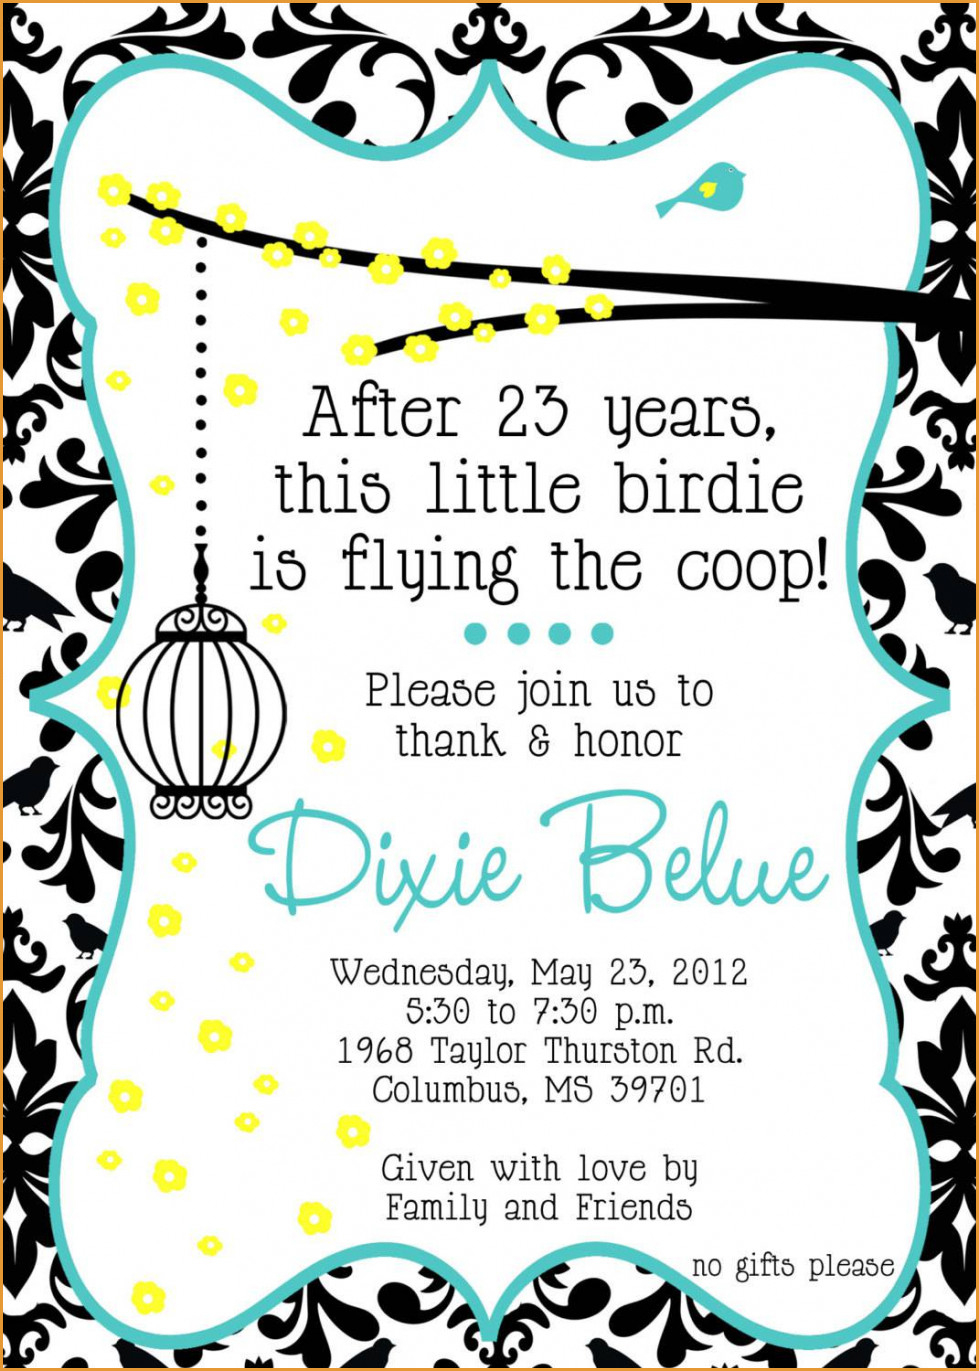 Party Invitations: Exciting Retirement Party Invitation Designs Free - Free Printable Retirement Party Flyers